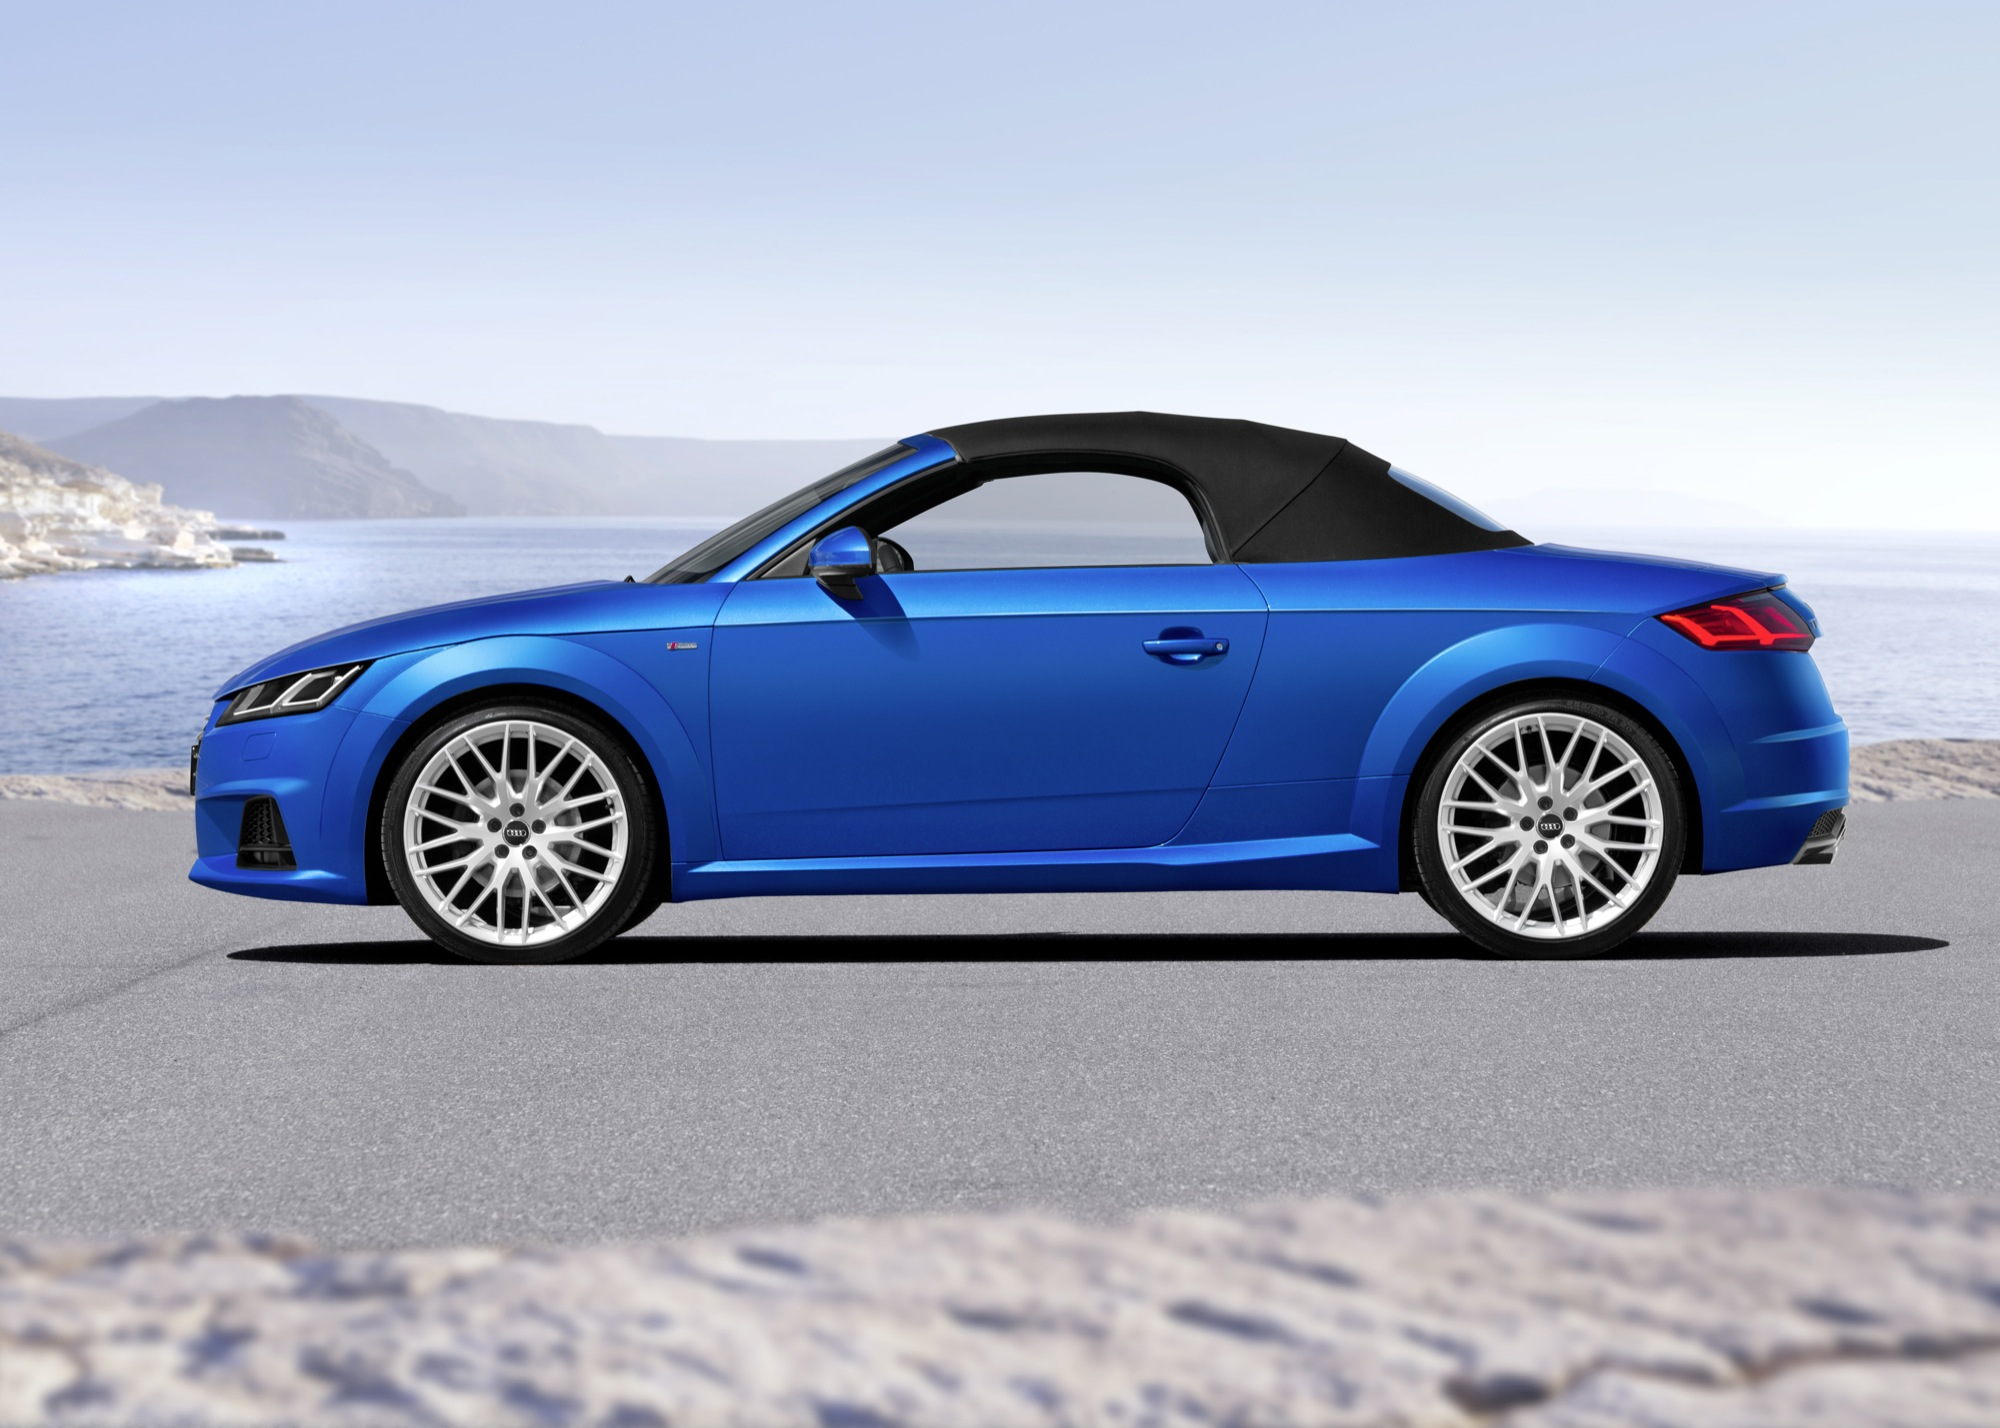 2015 audi tt roadster unveiled at paris motor show. Black Bedroom Furniture Sets. Home Design Ideas